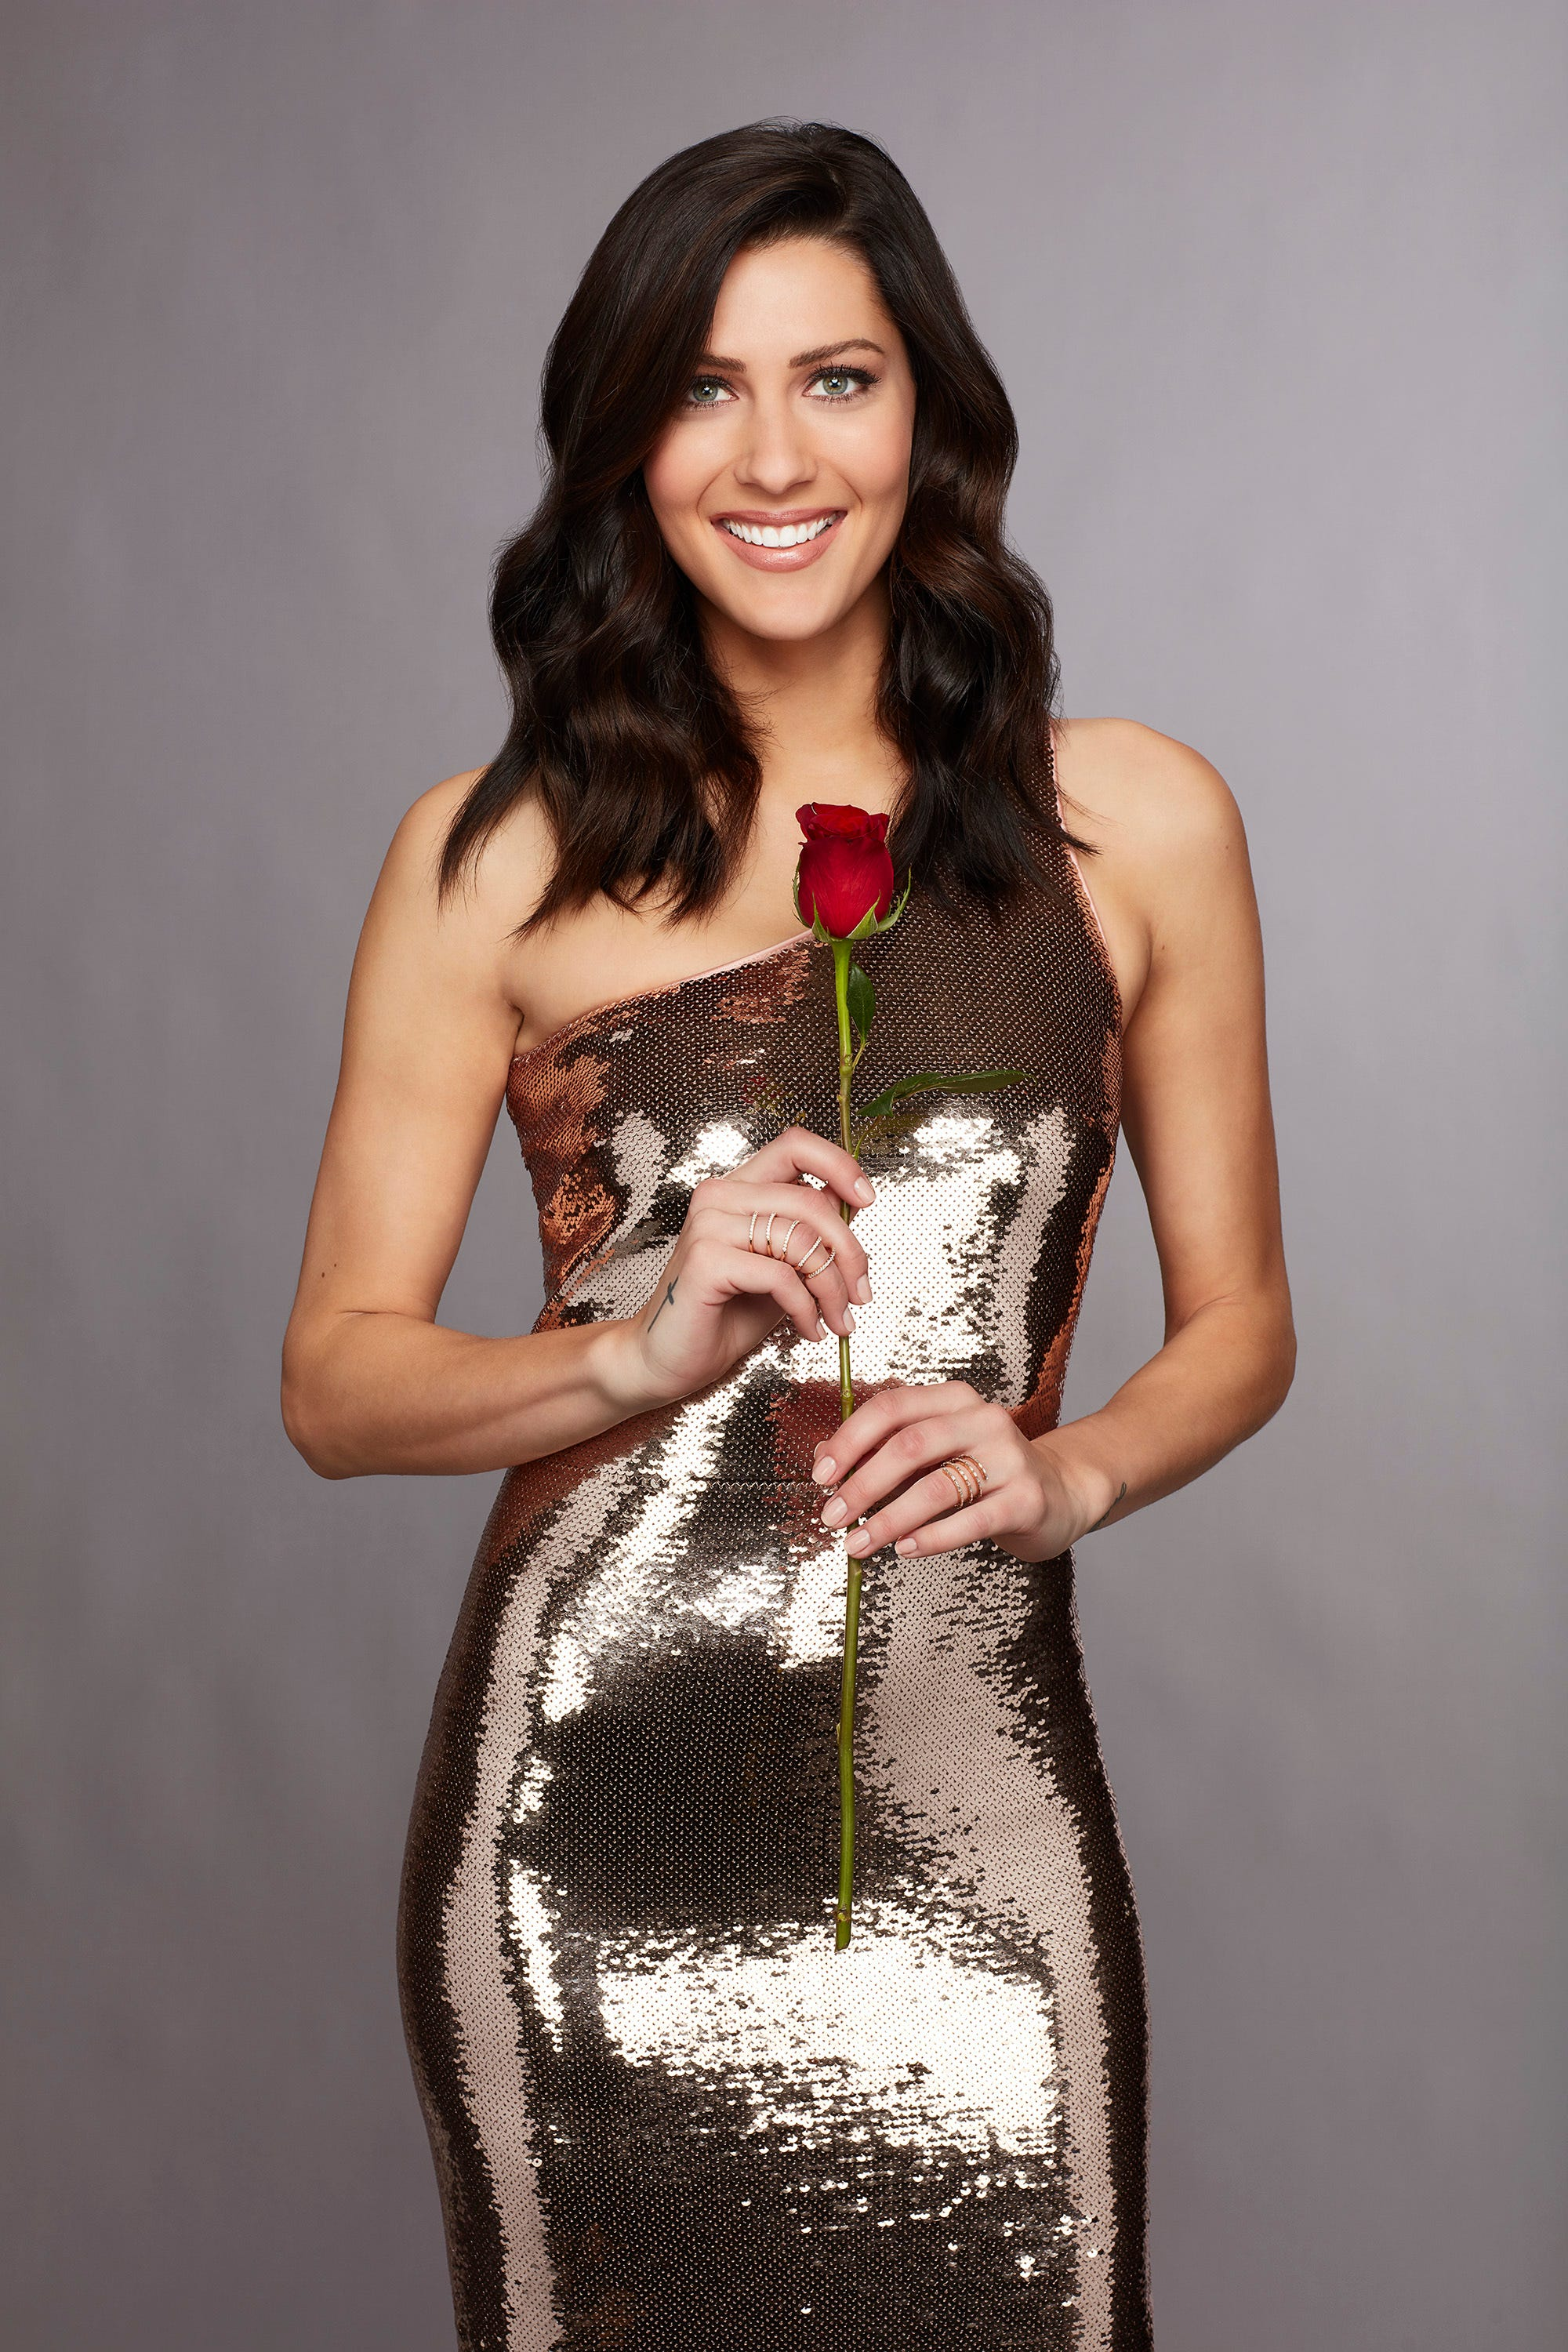 Who is ally from bachelorette dating now